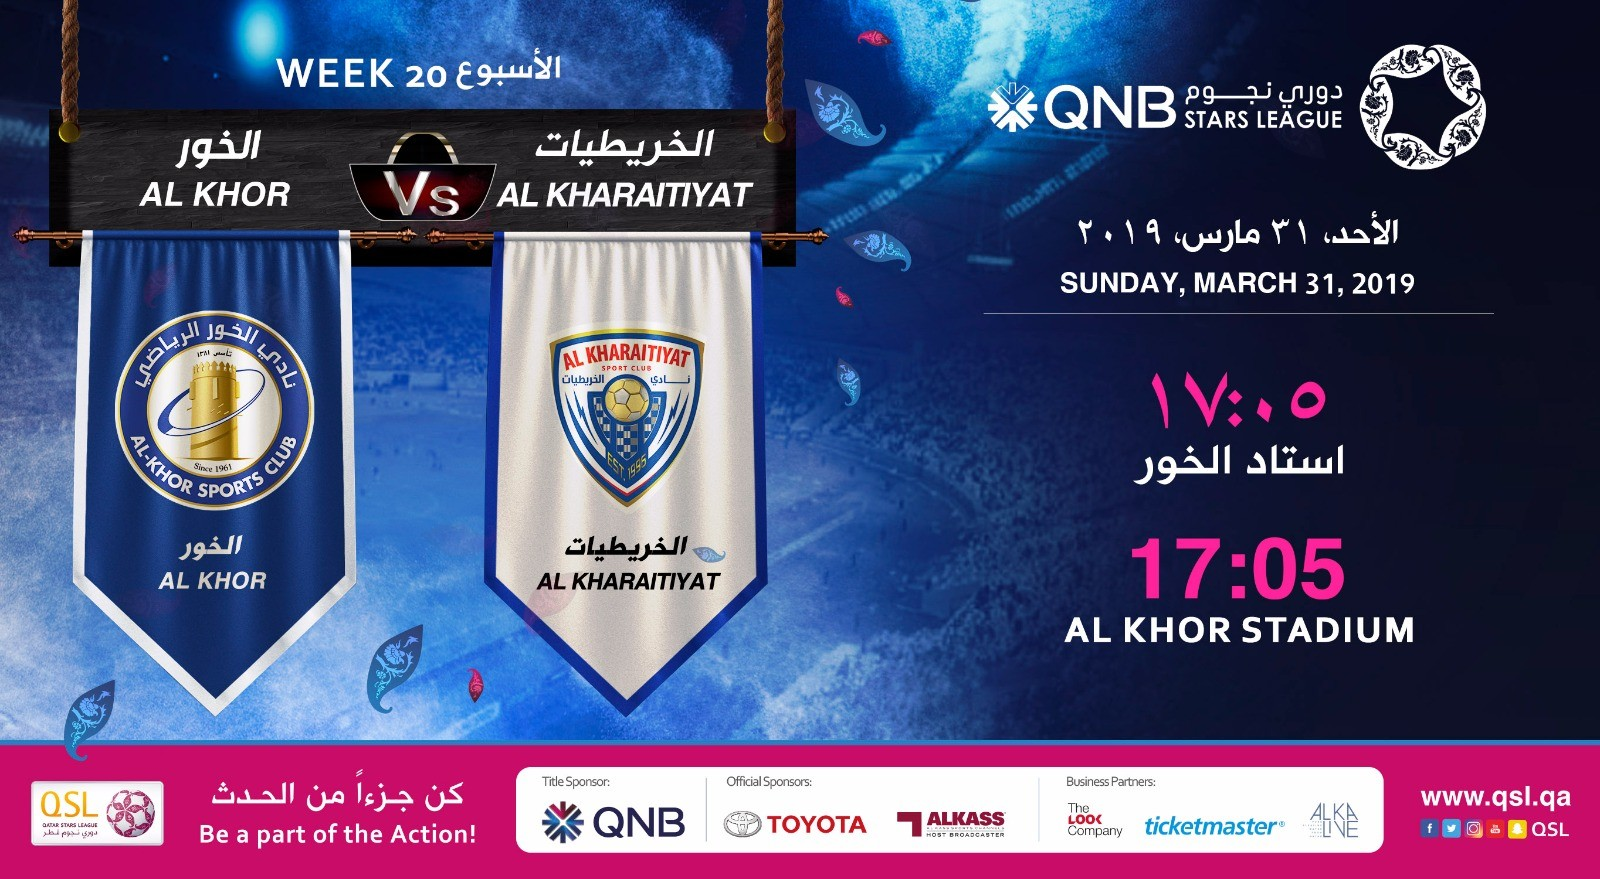 QNB Stars League Week 20 — Al Khor vs Al Kharaitiyat